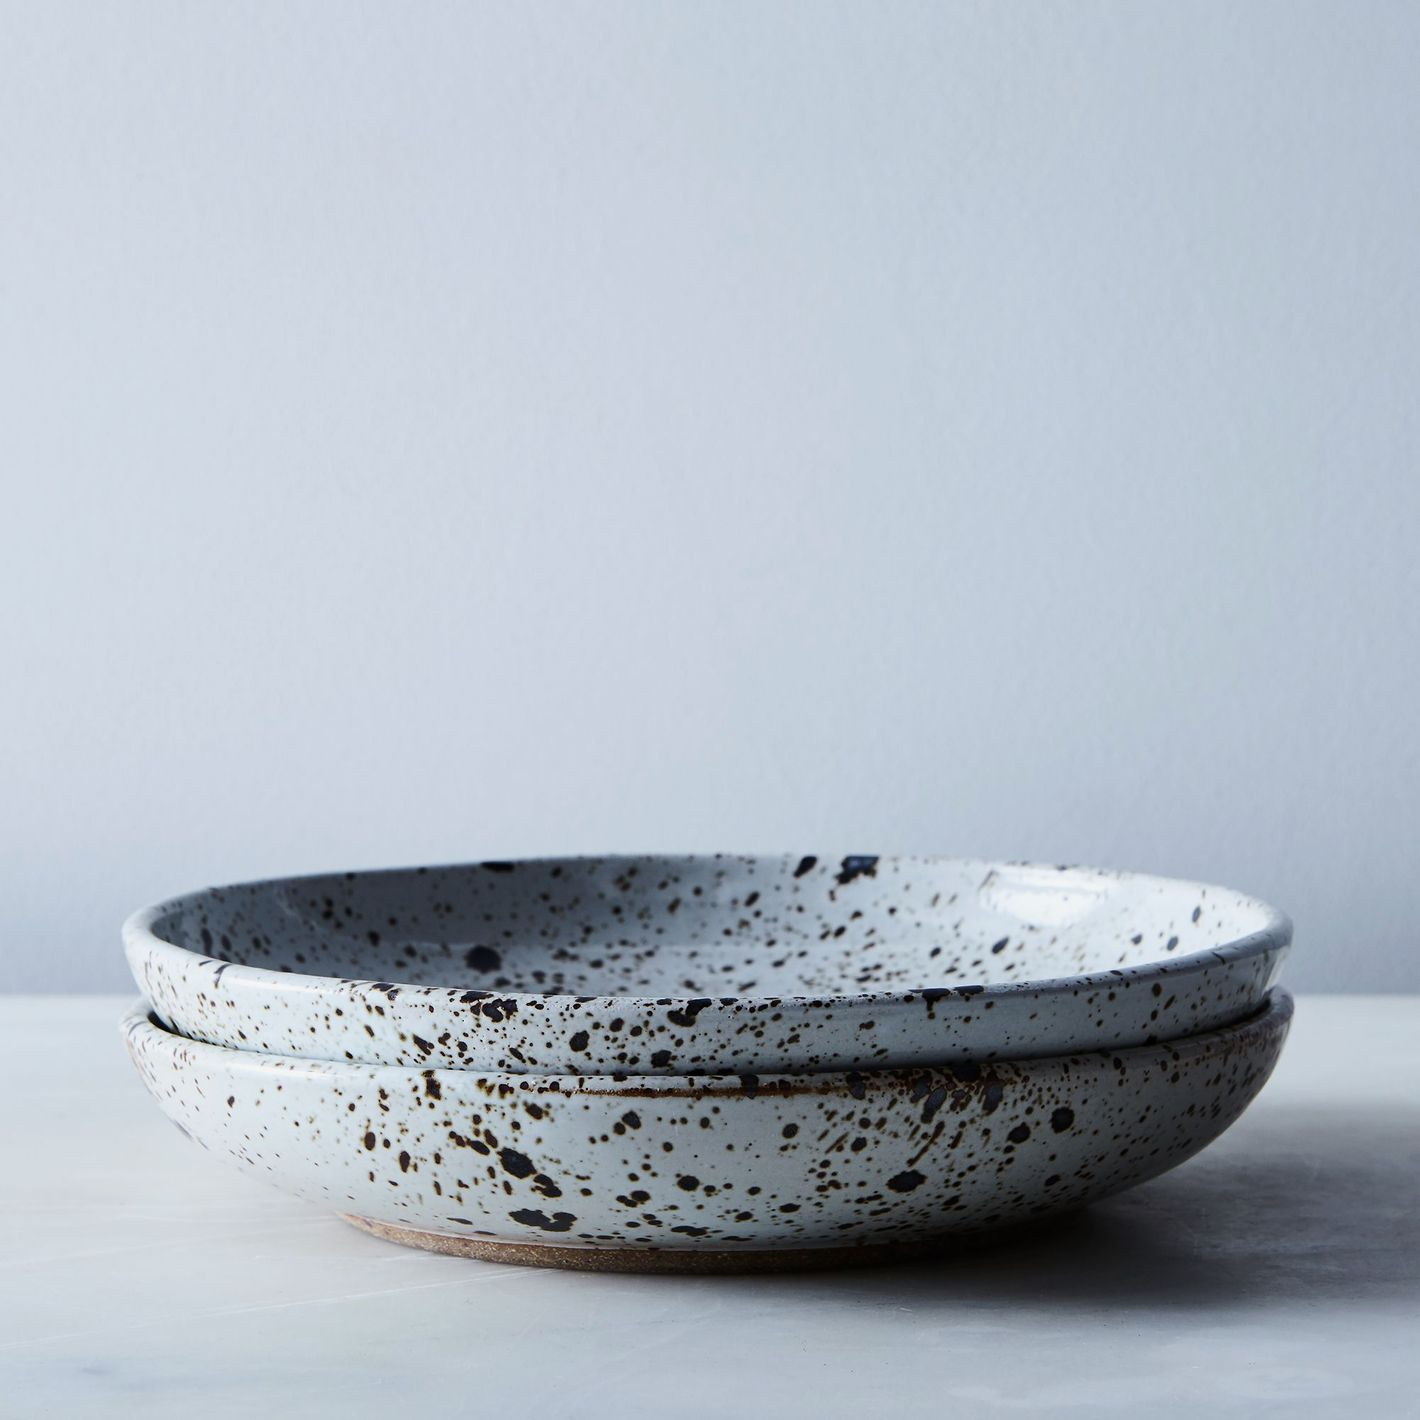 Handmade Ceramic Dinnerware u2014 Salad Bowl Speckled & 21 Best Basic-But-Cool Ceramic Plates and Tableware u2014 2018